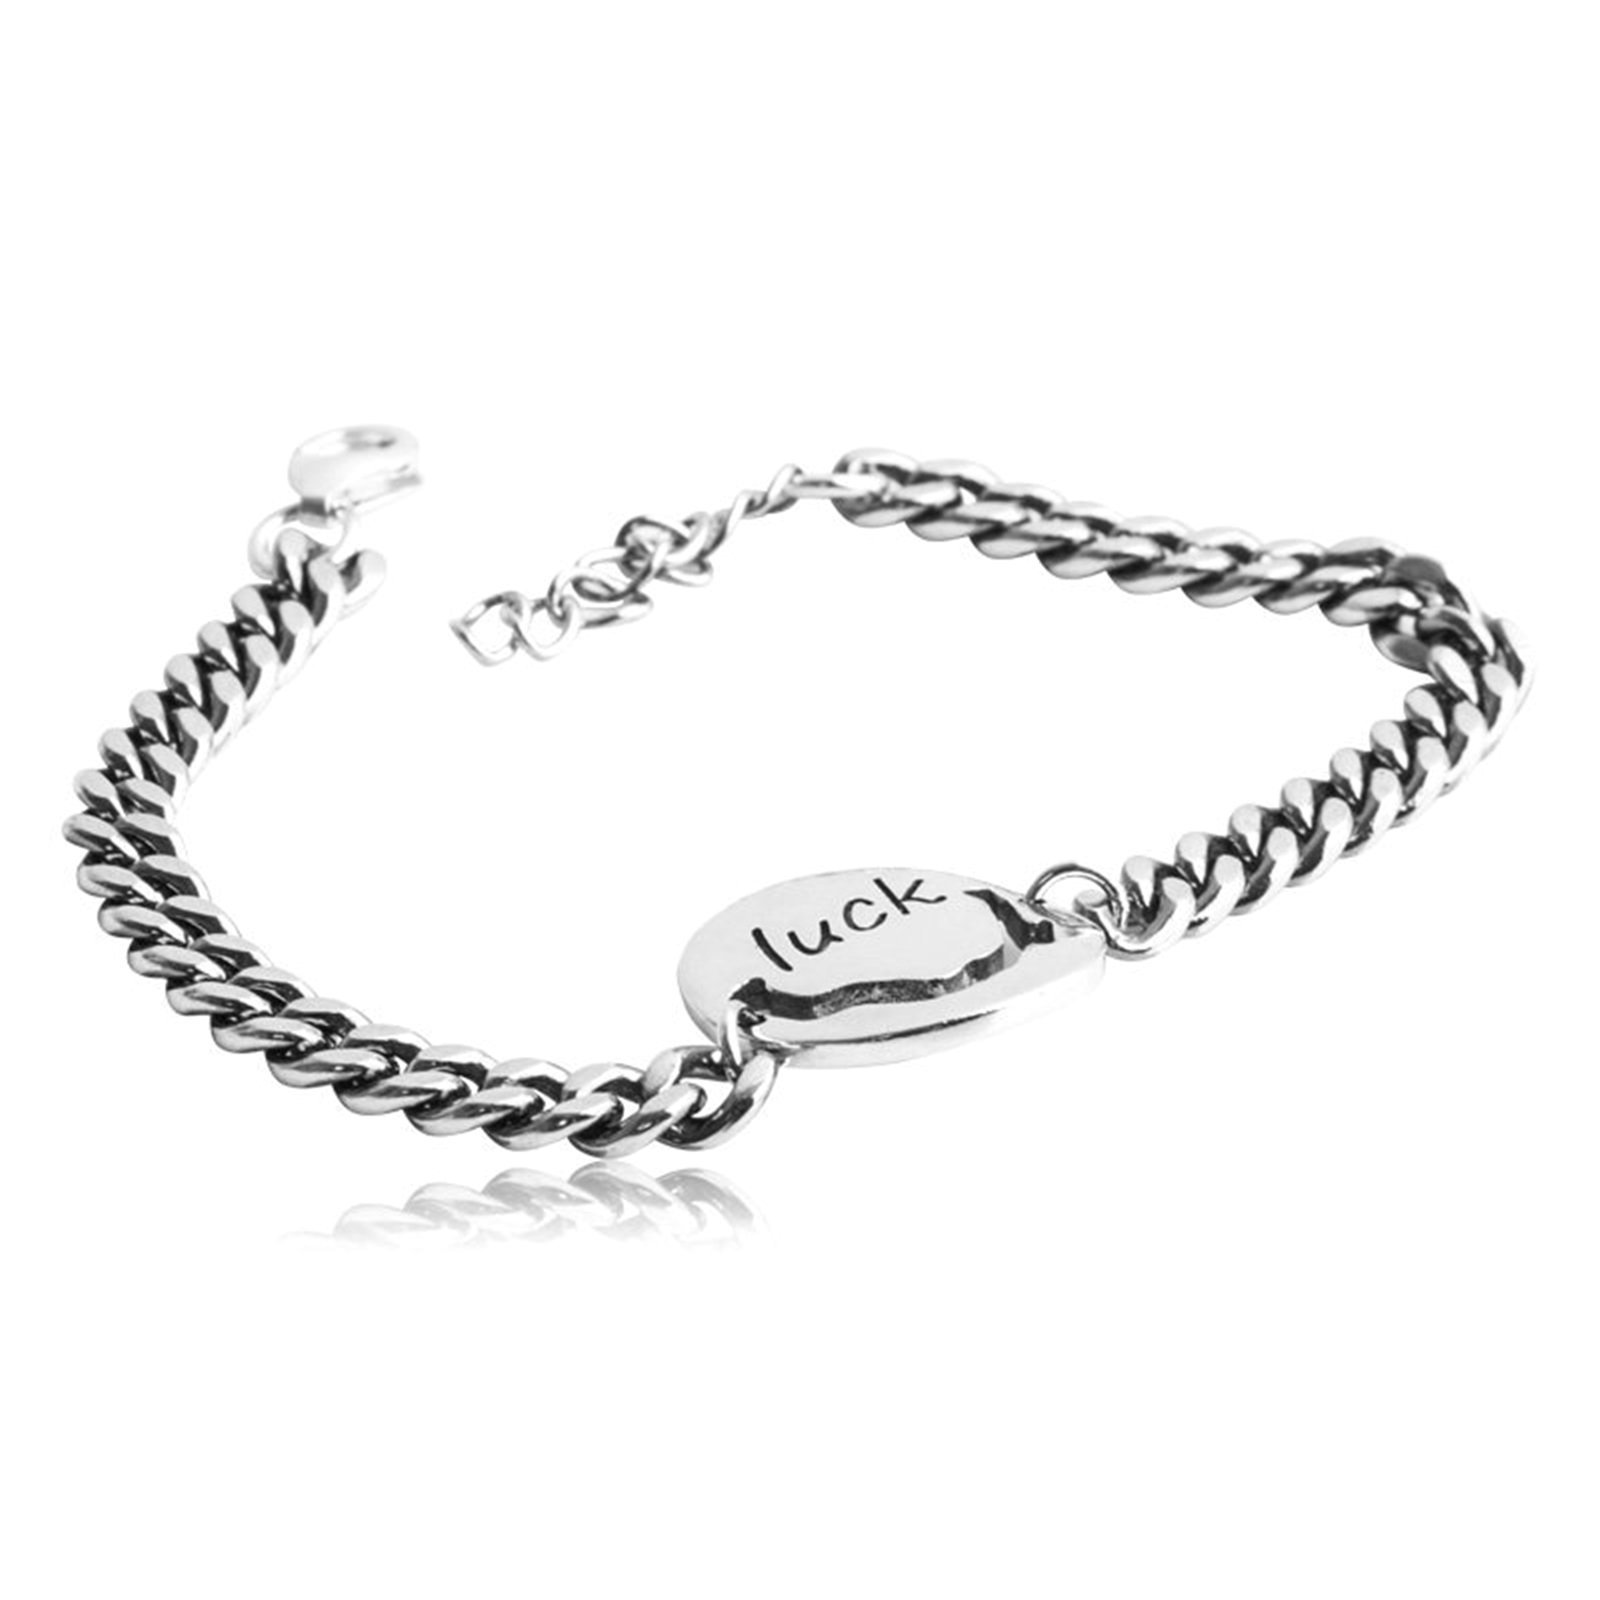 Daesar 925 Silver Bracelet For Women And Men Luck Bracelet Silver Chain Length:17CM